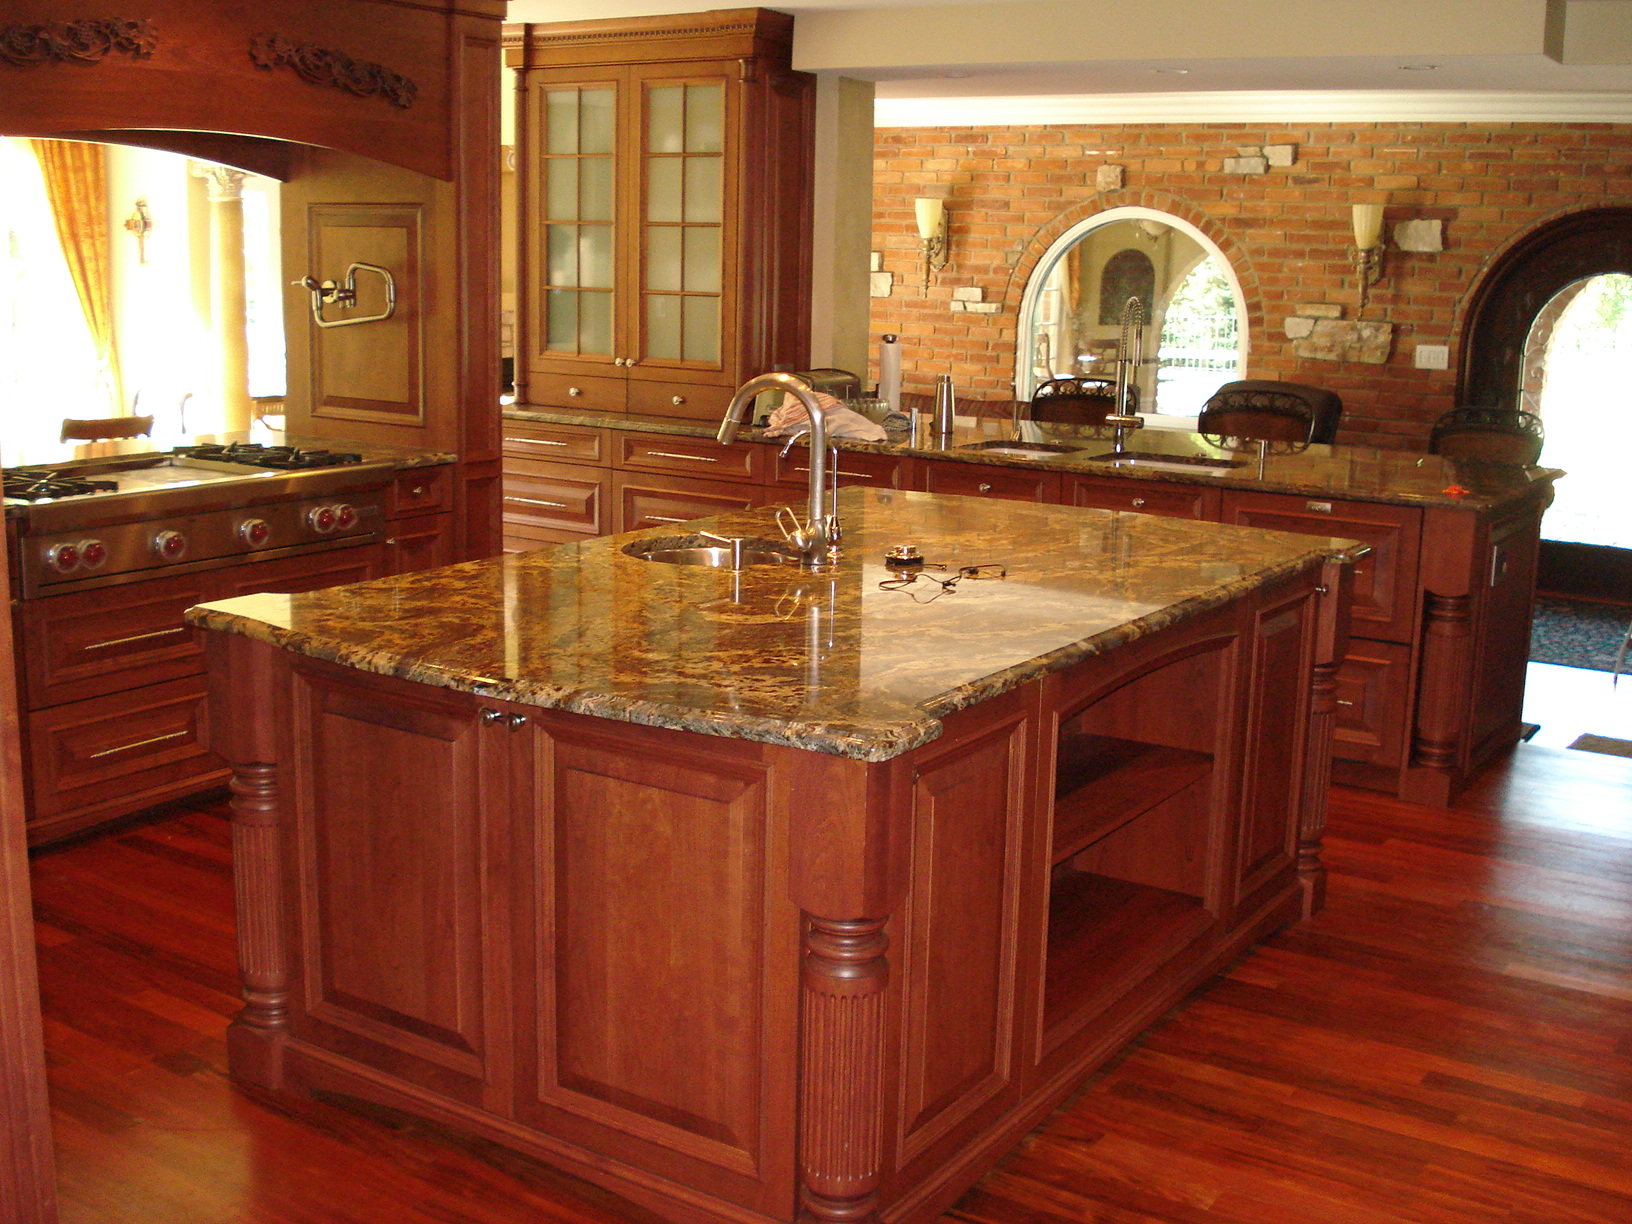 countertops countertop kitchen Countertops